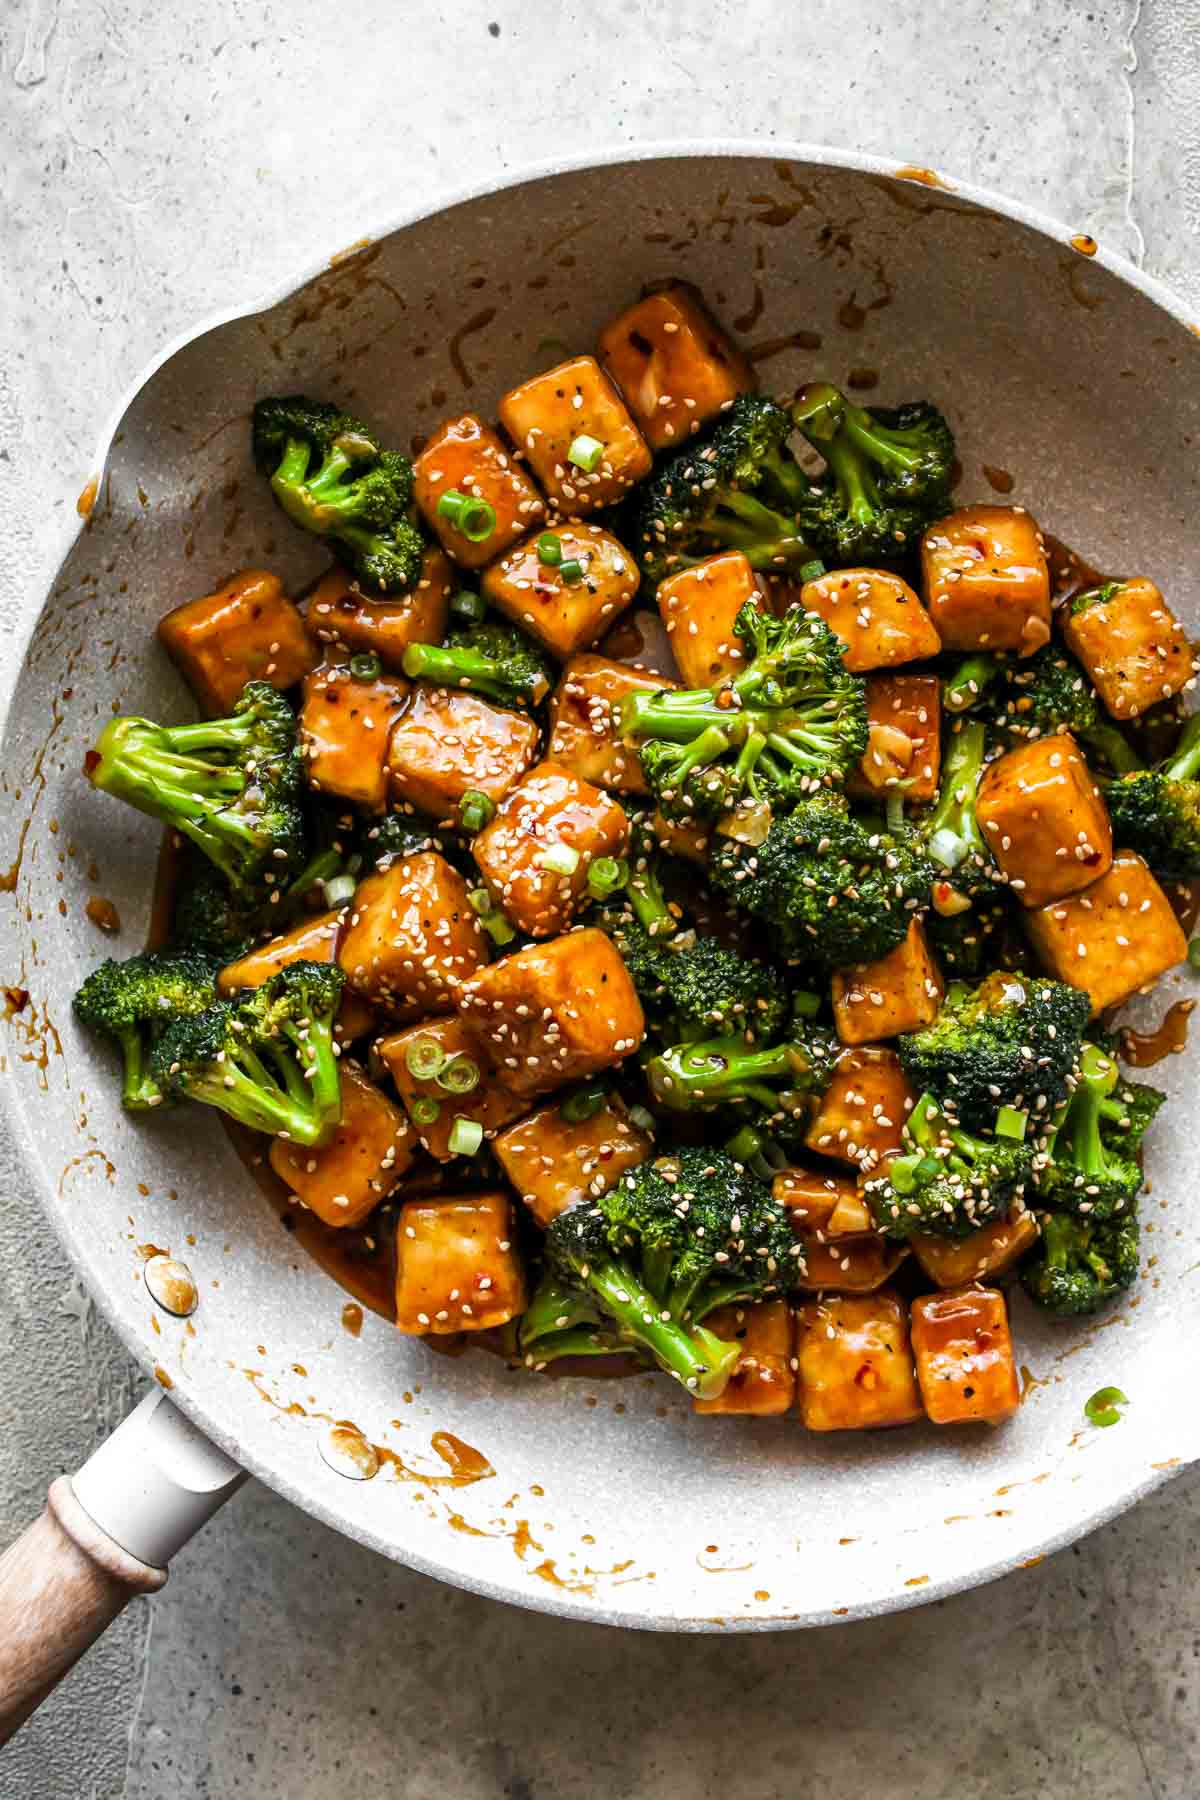 General Tso's Tofu and Broccoli Stir-Fry in a skillet